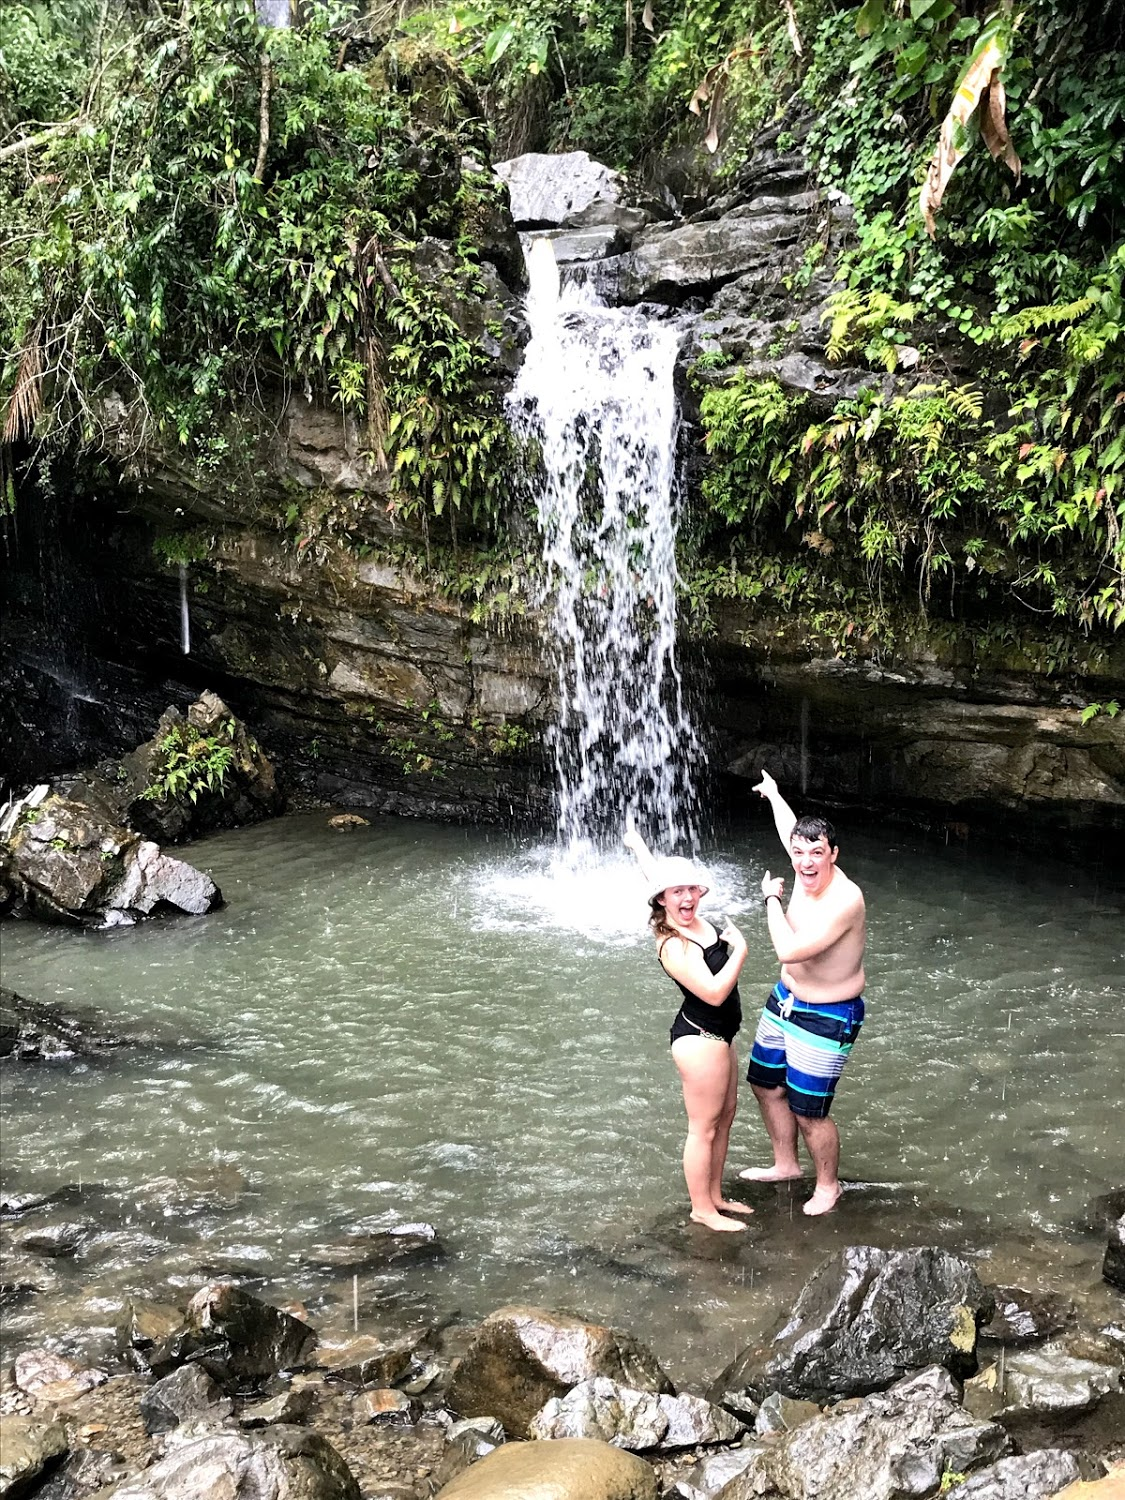 Korie Burgess and Josh Ellis are very excited to jump into a natural spring in the Yucatán Rainforest